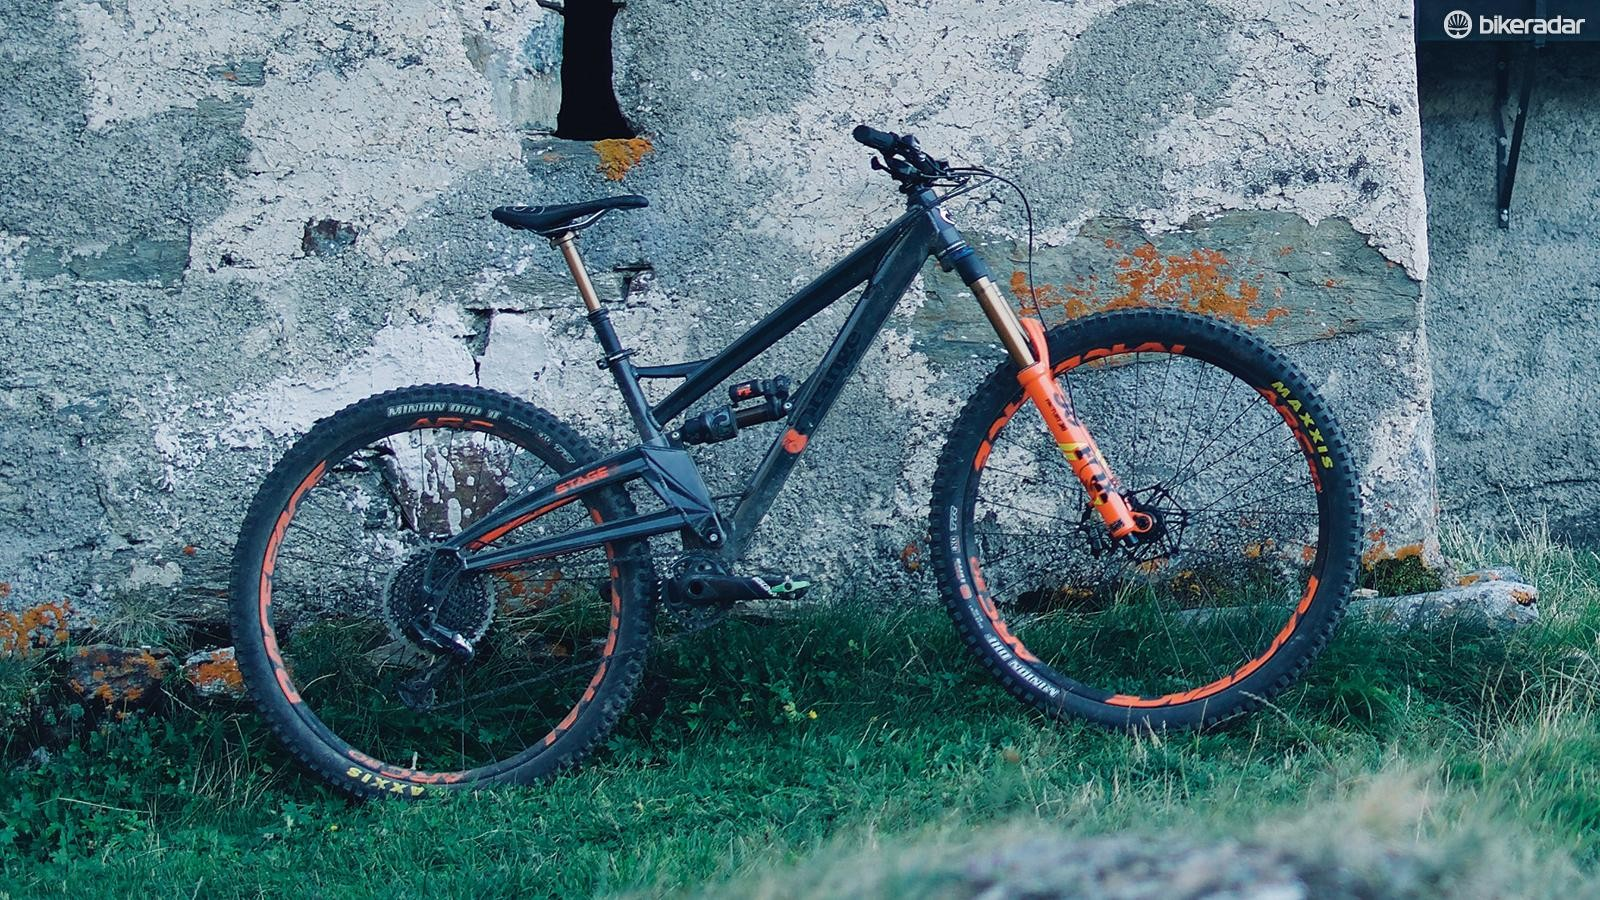 The single-pivot silhouette has evolved over the years but the Stage 6 is still unmistakably an Orange